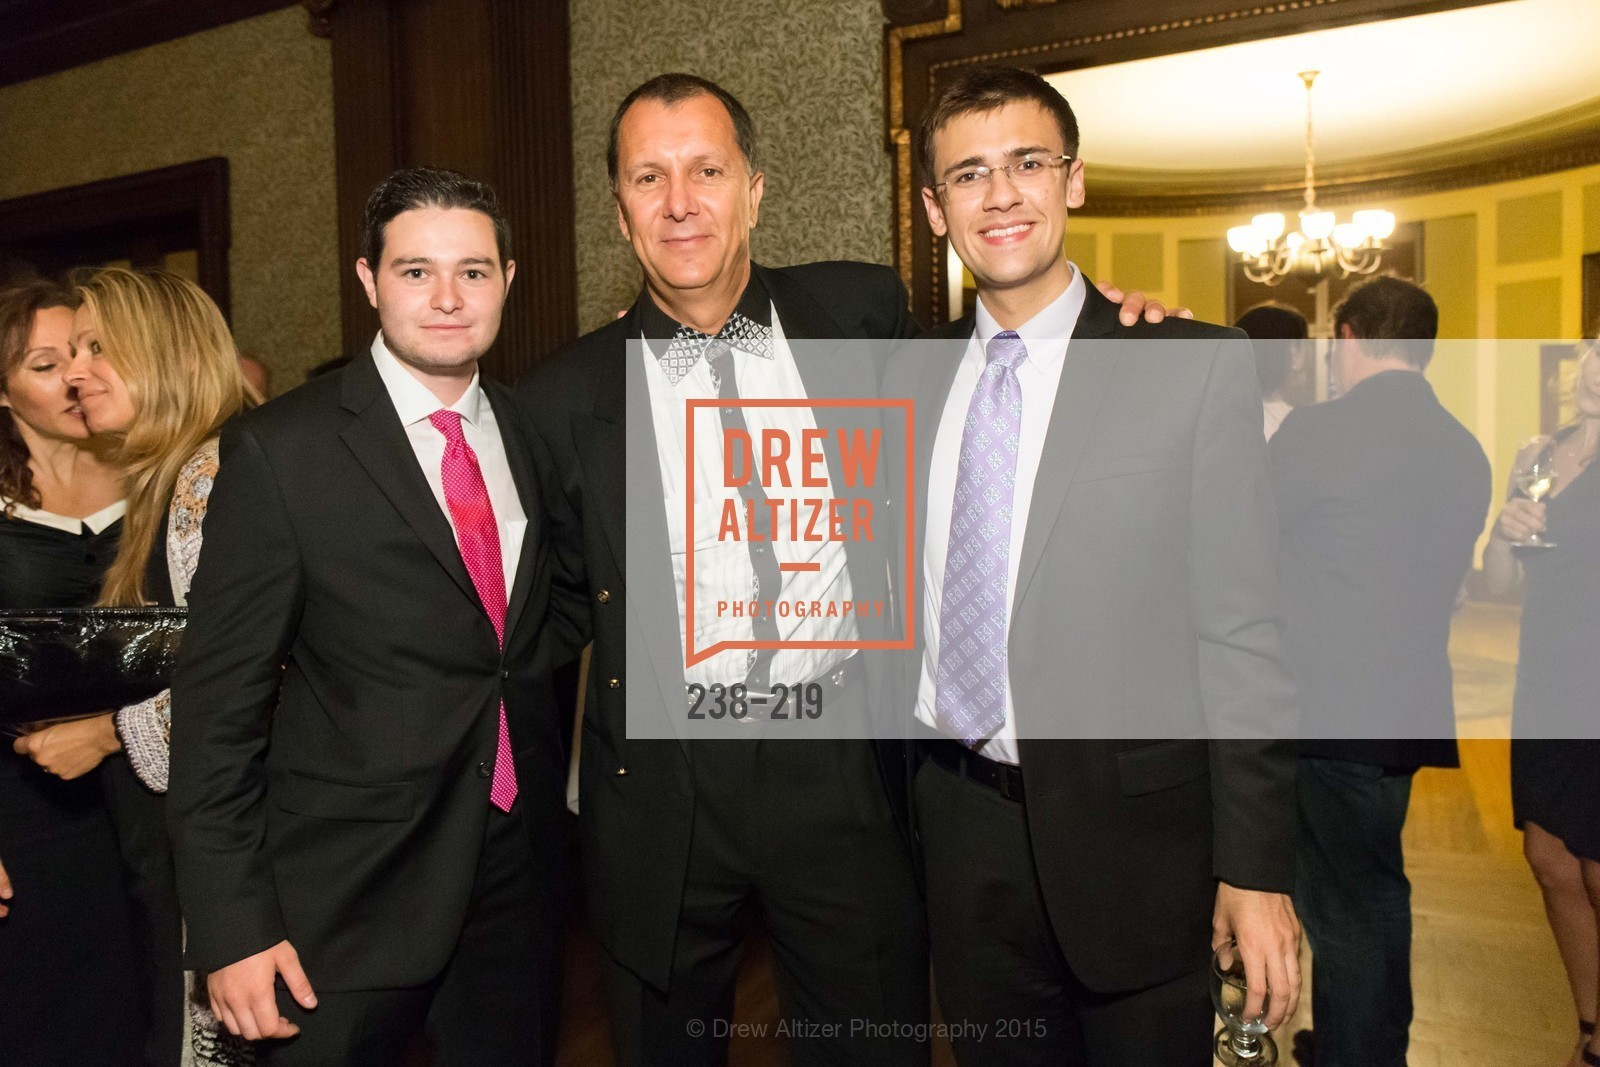 Pierre Laury, Patrick Renaus, Arro Hedrick Smith, Champagne Reception & Screening of Million Dollar Listing San Francisco, University Club. 800 Powell St, August 5th, 2015,Drew Altizer, Drew Altizer Photography, full-service event agency, private events, San Francisco photographer, photographer California